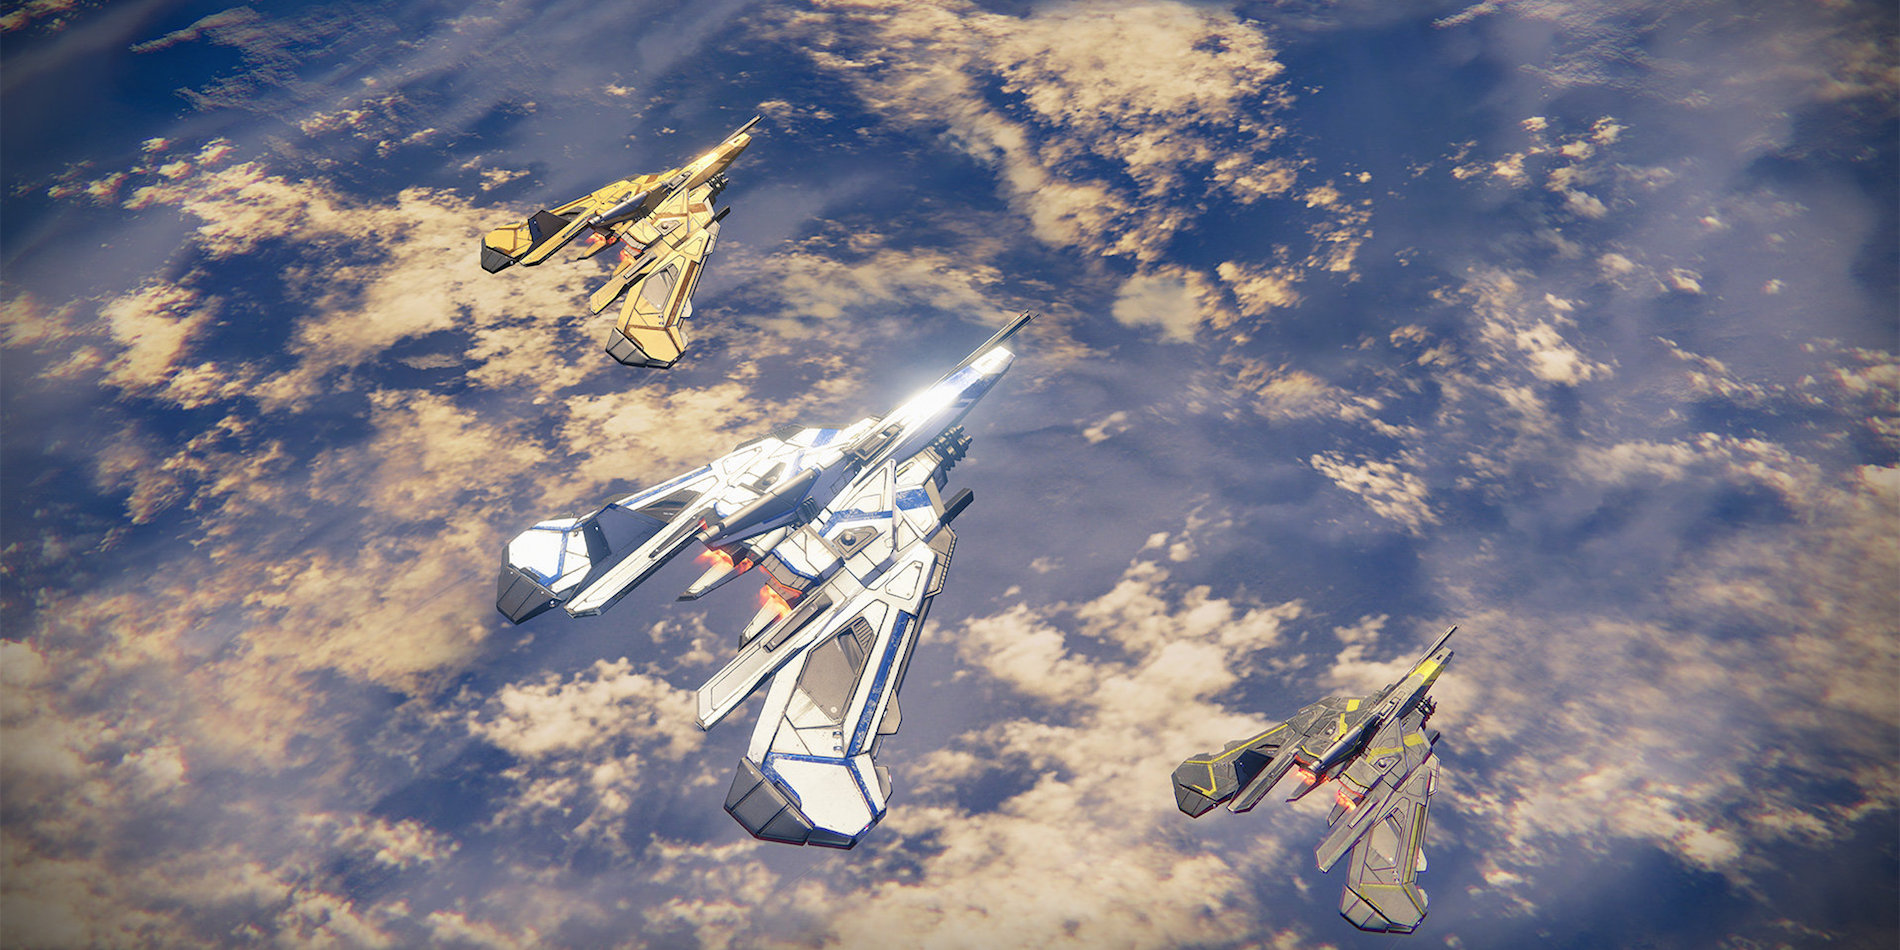 destiny matchmaking explained Welcome to the destiny 2 homepage new legends will rise on september 6 humanity's last safe city has fallen to an overwhelming invasion force, led by ghaul, the imposing commander of the brutal red legion.